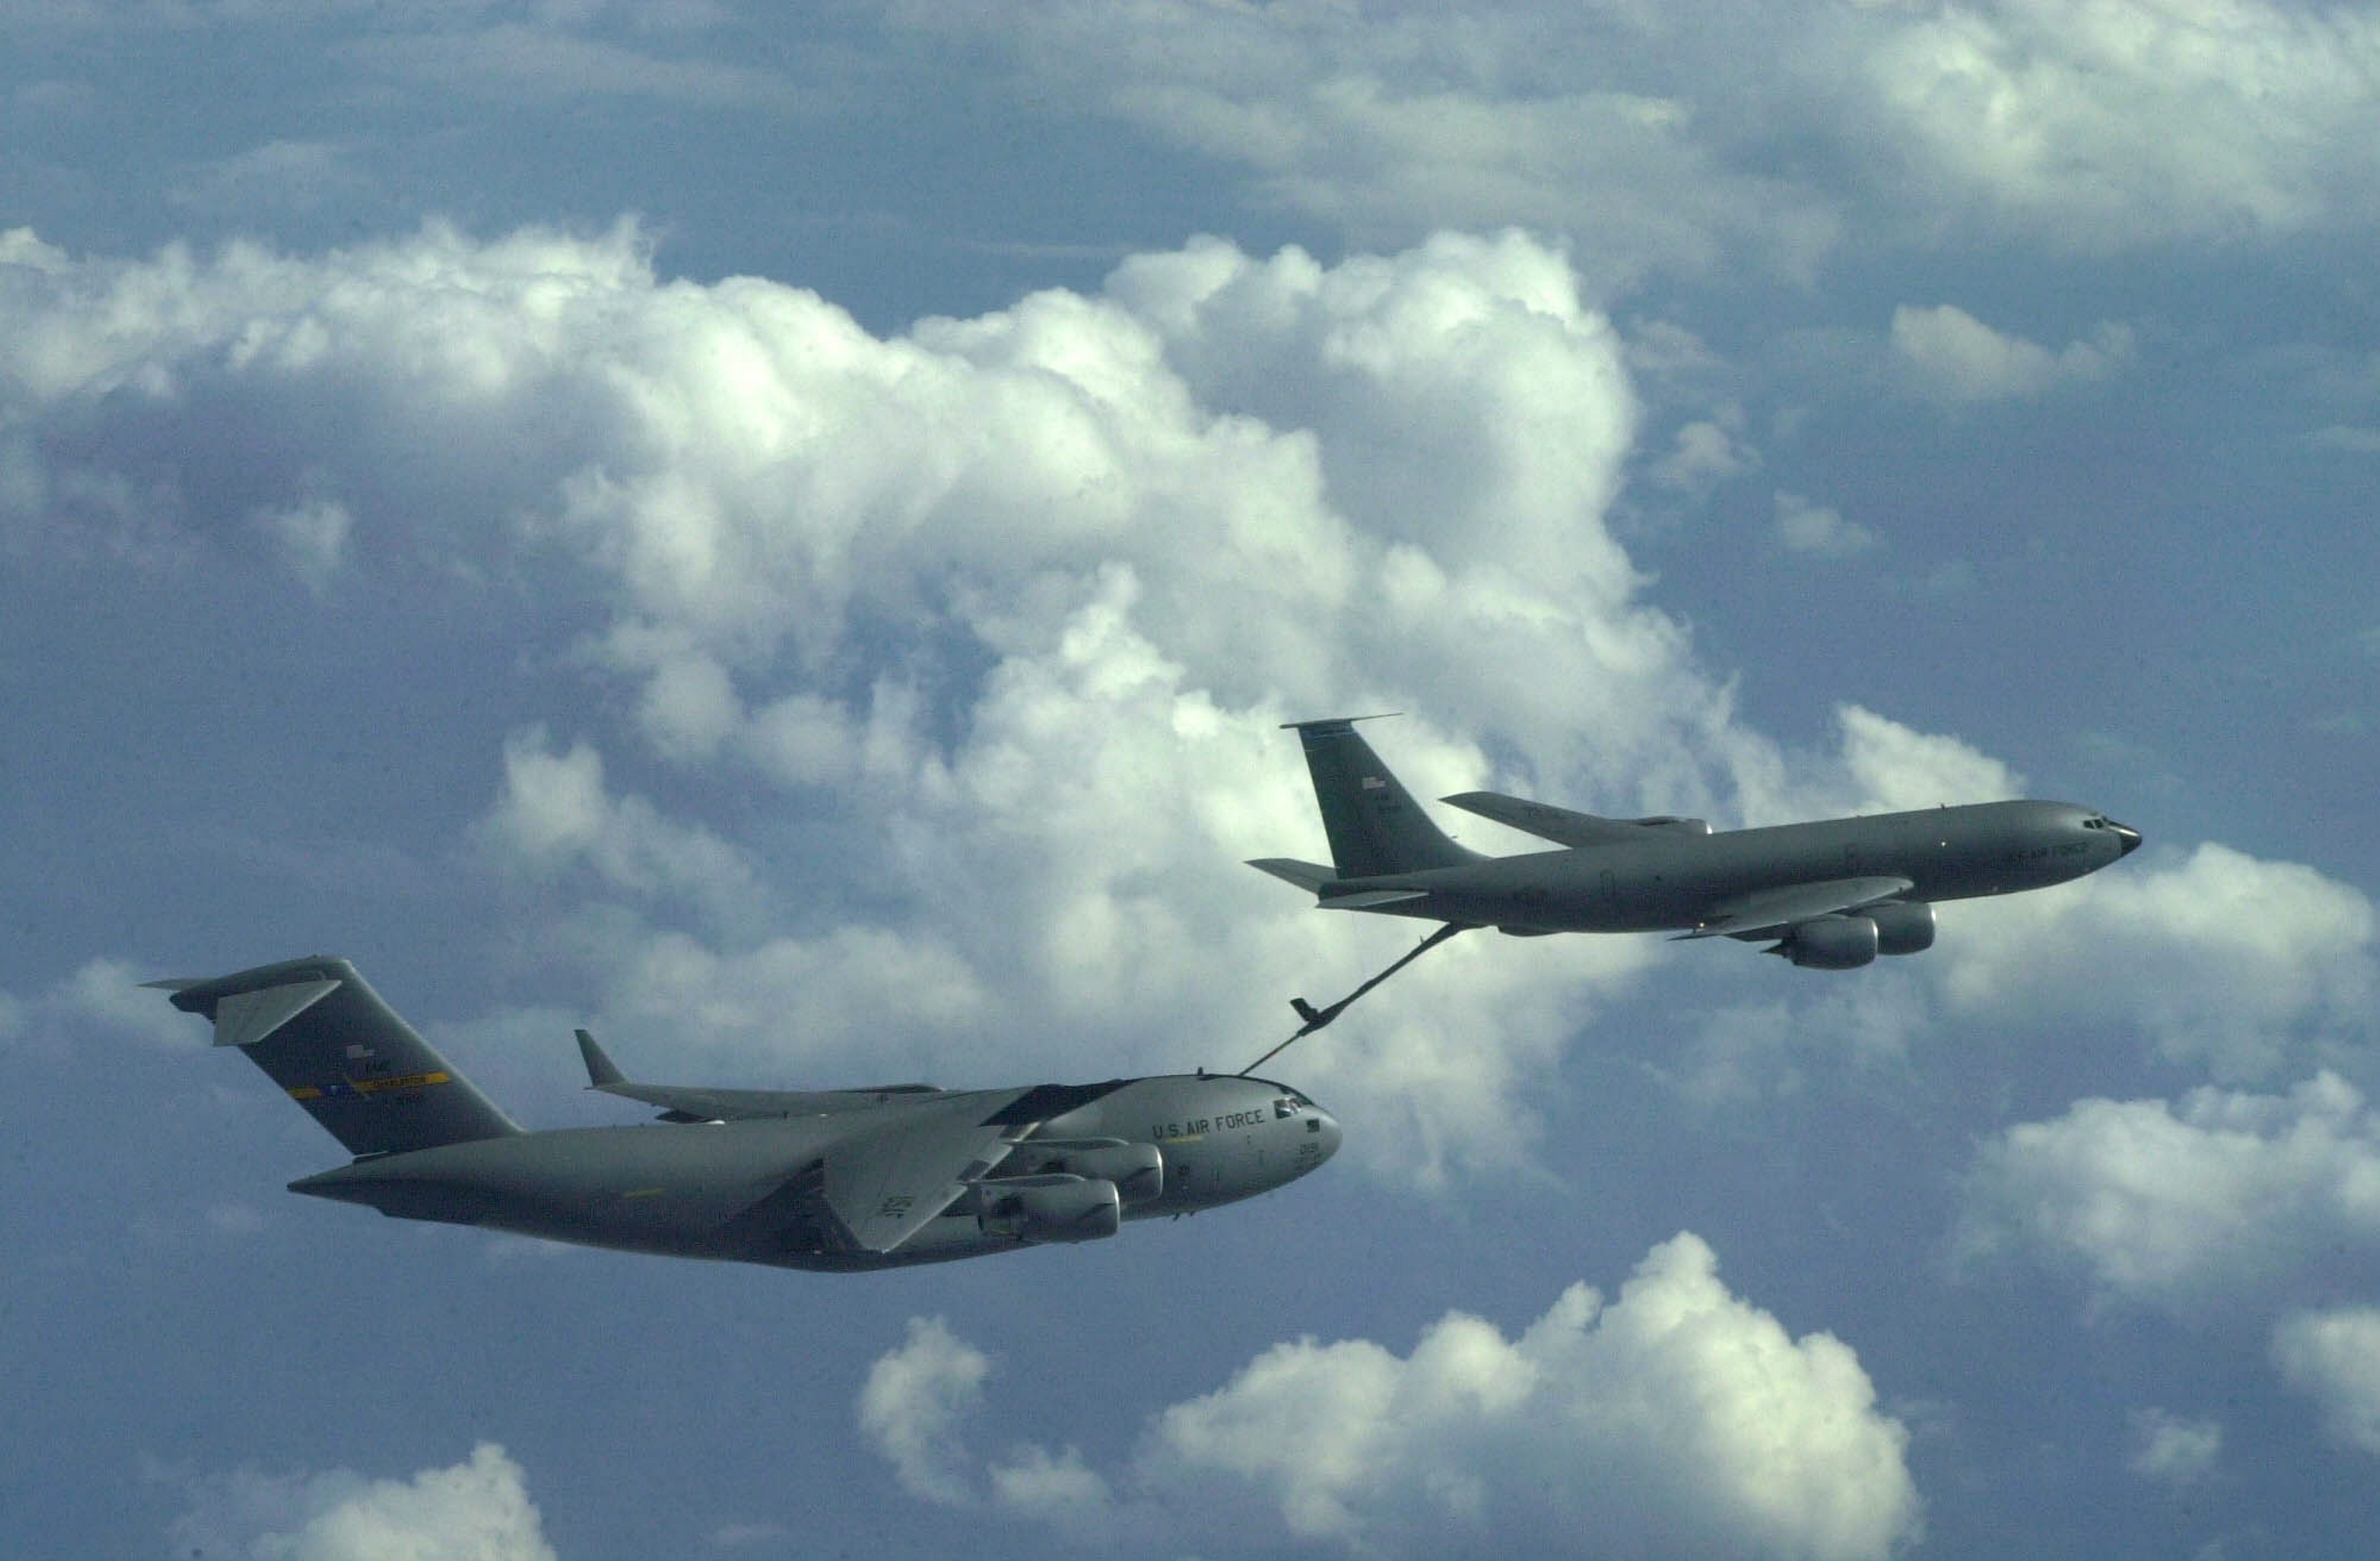 A KC-135R Stratotanker (right) from the 107th Air Refueling Wing in Niagara Falls refuels a C-17 Globemaster III cargo jet at 29,000 feet in the skies over Georgia during a training mission on Oct. 2, 2002. (Derek Gee/Buffalo News)